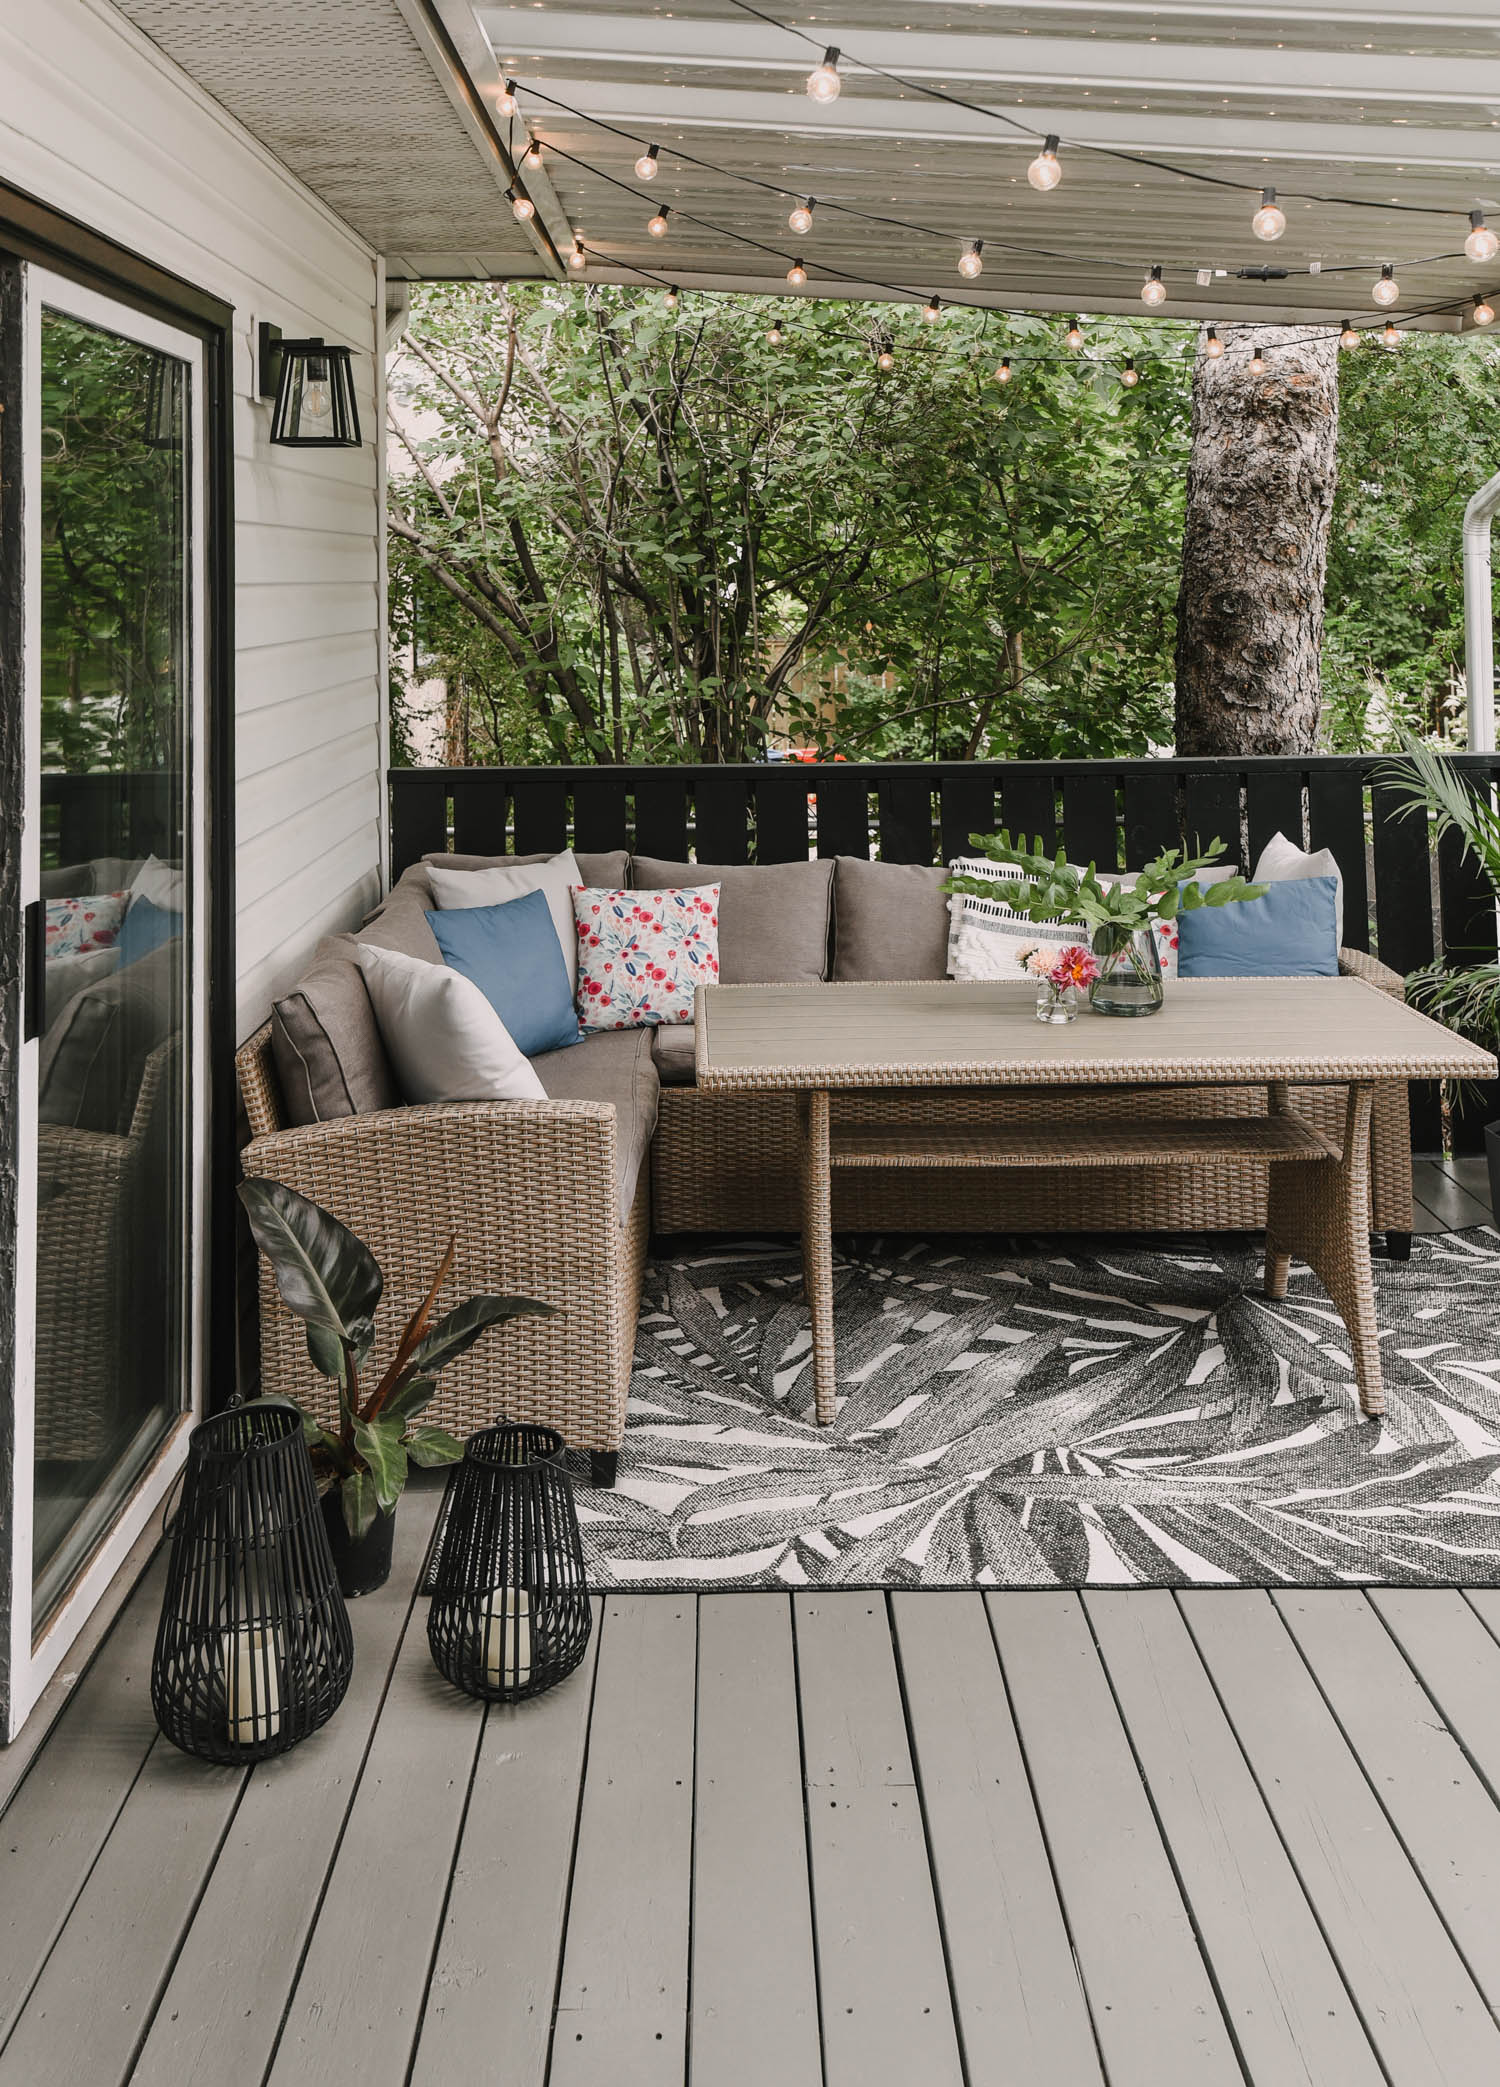 A fresh patio in one weekend?! Heck yes! From tired chipping paint and rotting wood to THIS